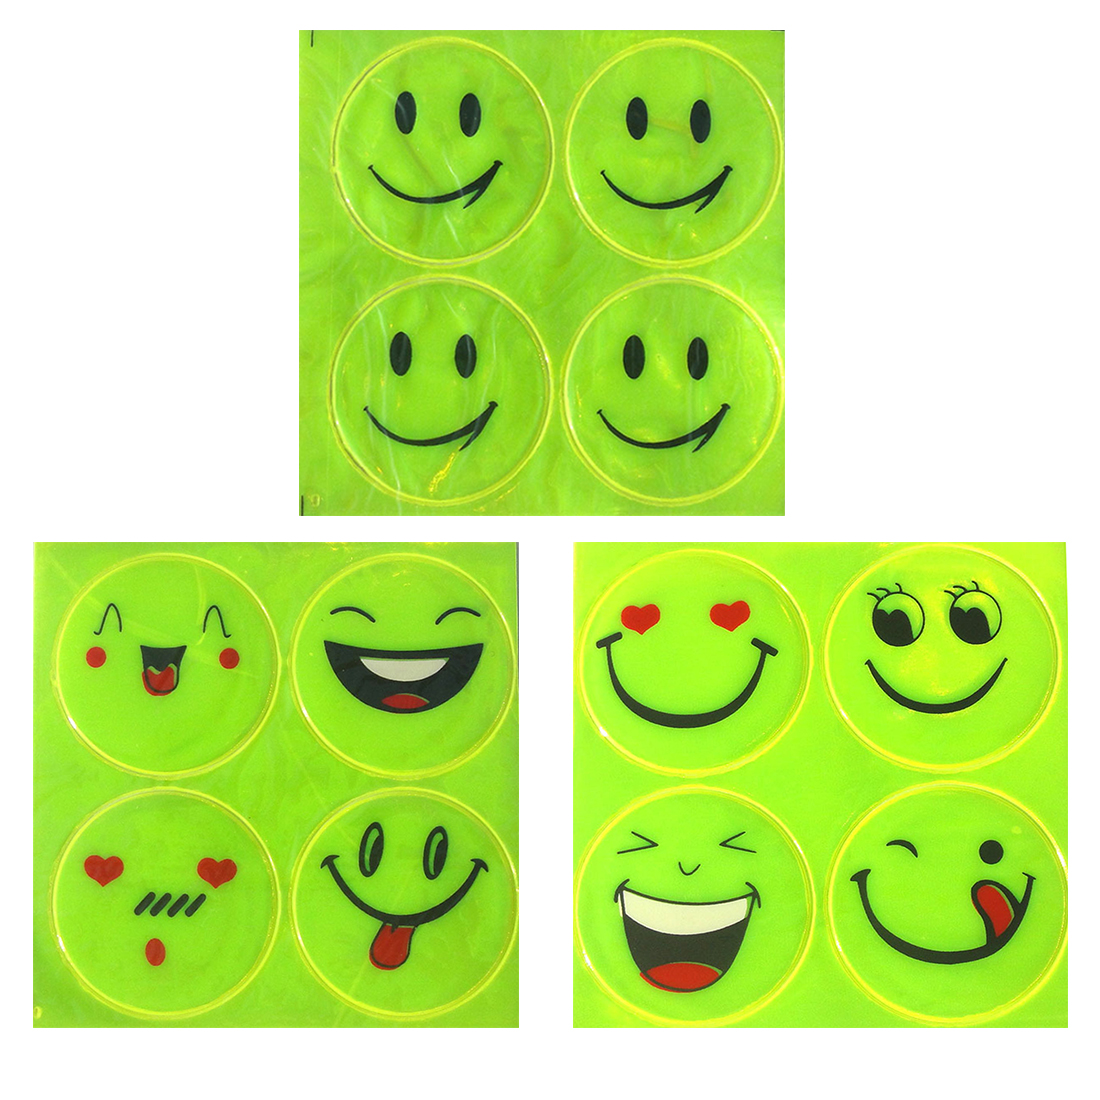 Dewtreetali Reflective Sticker Small Smile Face For Kids School Bag Reflective Motorcycle Scooter For Visible Safety 1 Sheet